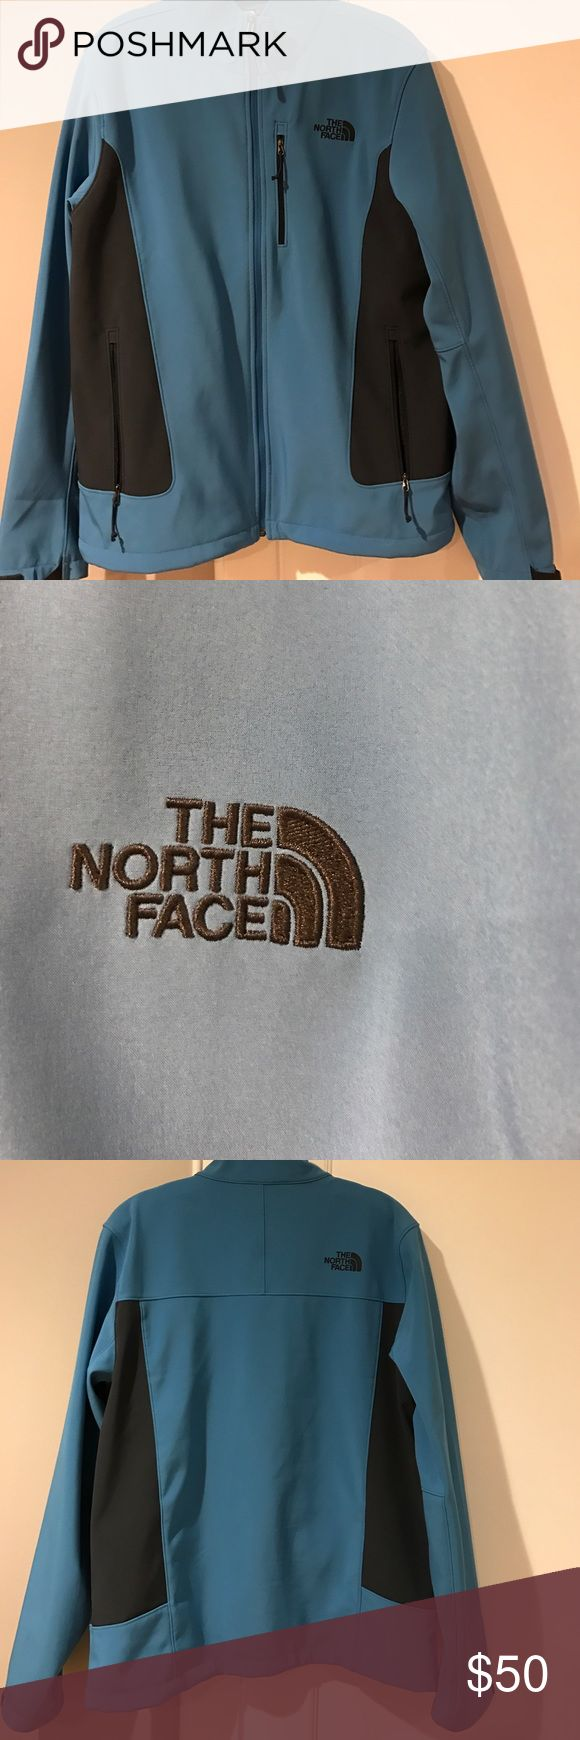 North face heron blue men's shellrock jacket The North Face Shellrock Jacket for Men -Featuring an advanced Apex Universal ( like new only worn once ) North Face Jackets & Coats Raincoats